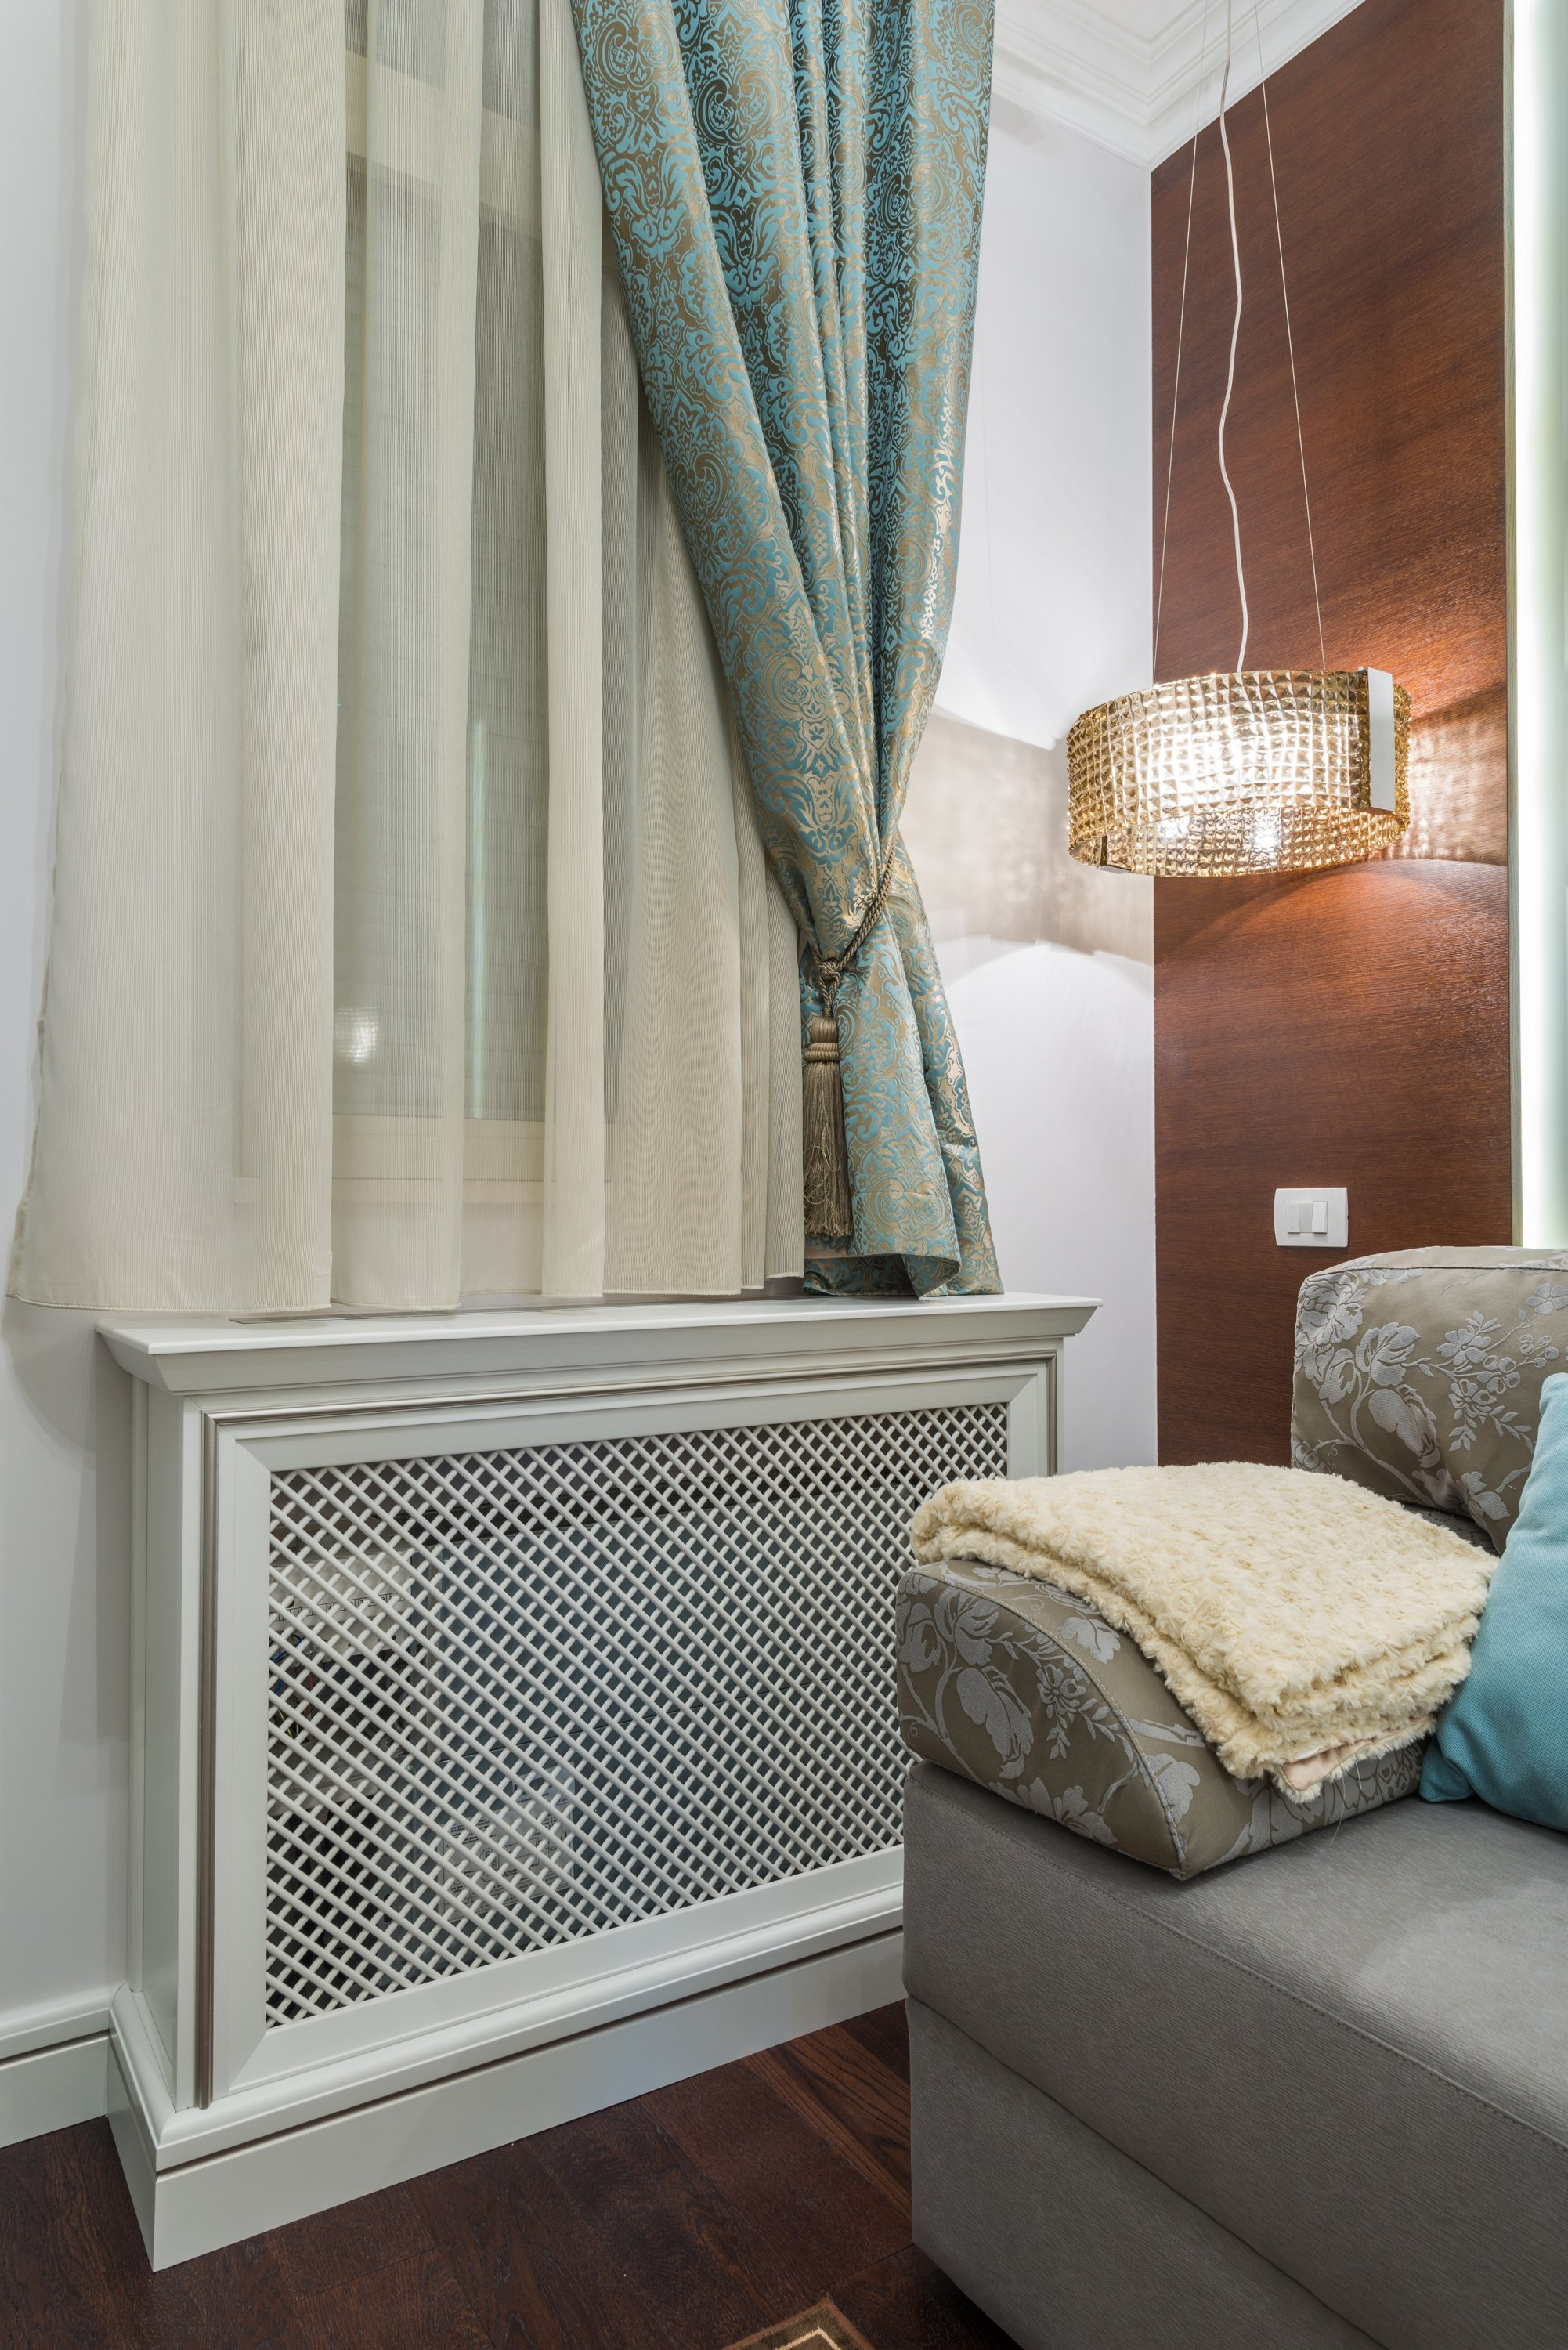 Are Covers To Hide Unsightly Radiators Smart Or A Waste Of Energy Daily Sabah